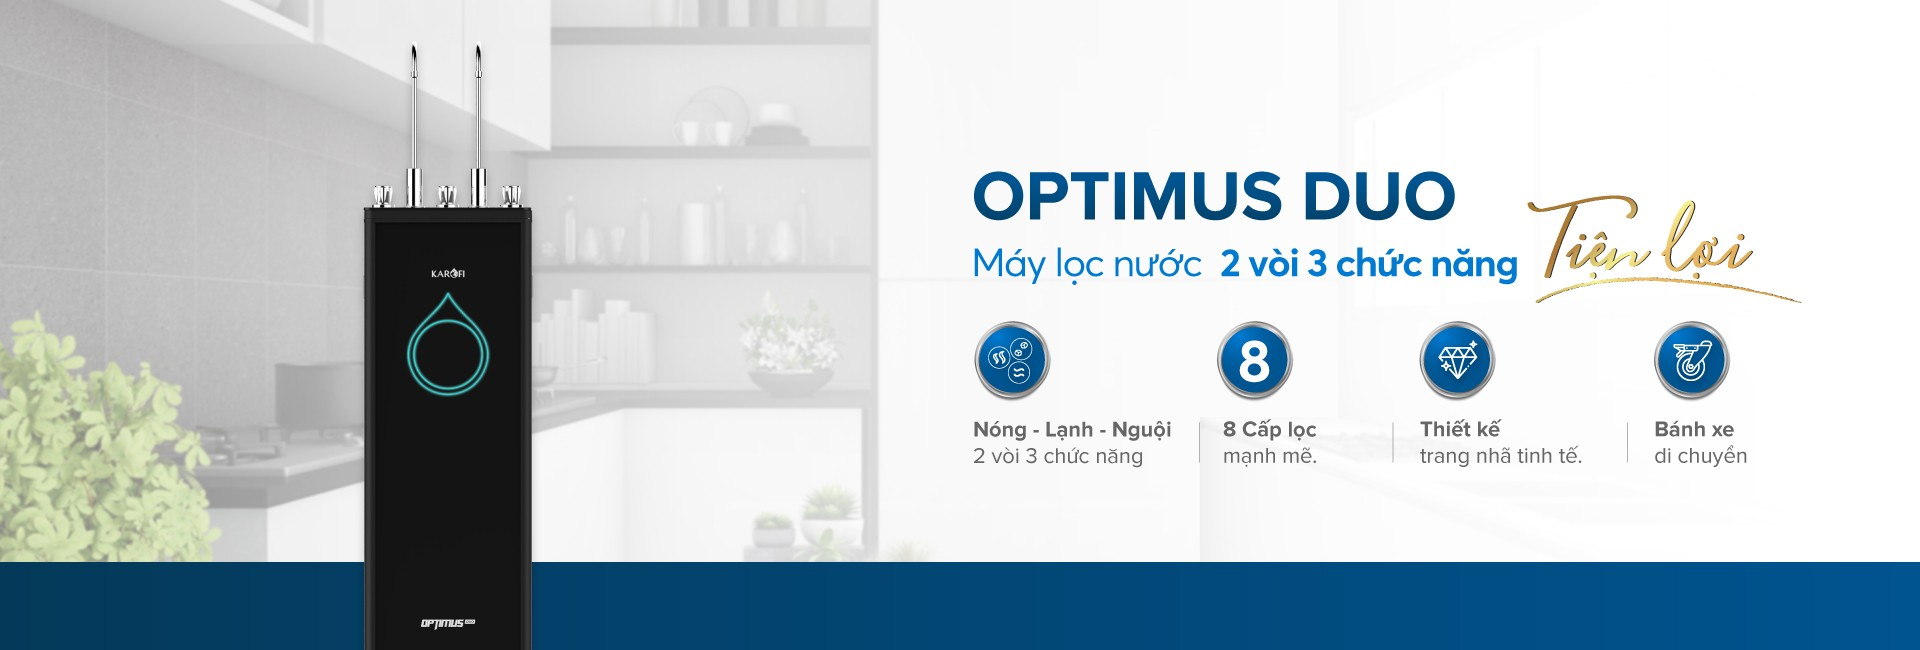 may-loc-nuoc-karofi-optimus-duo-o-d138